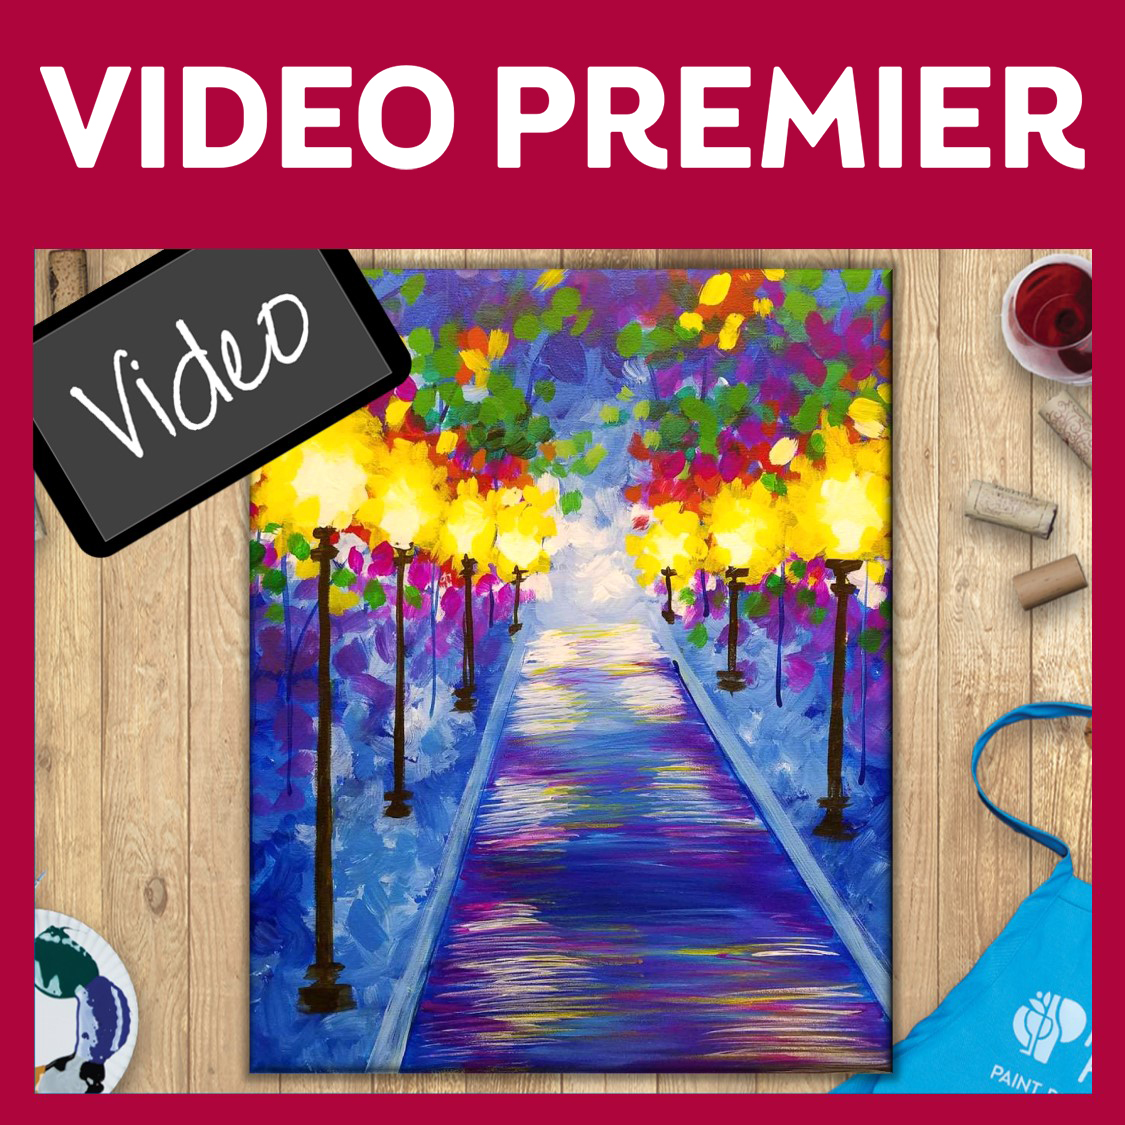 Video Premier! Paint & Sip Video - PAINTING KIT INCLUDED  - WATCH NOW or Later up to 7 days